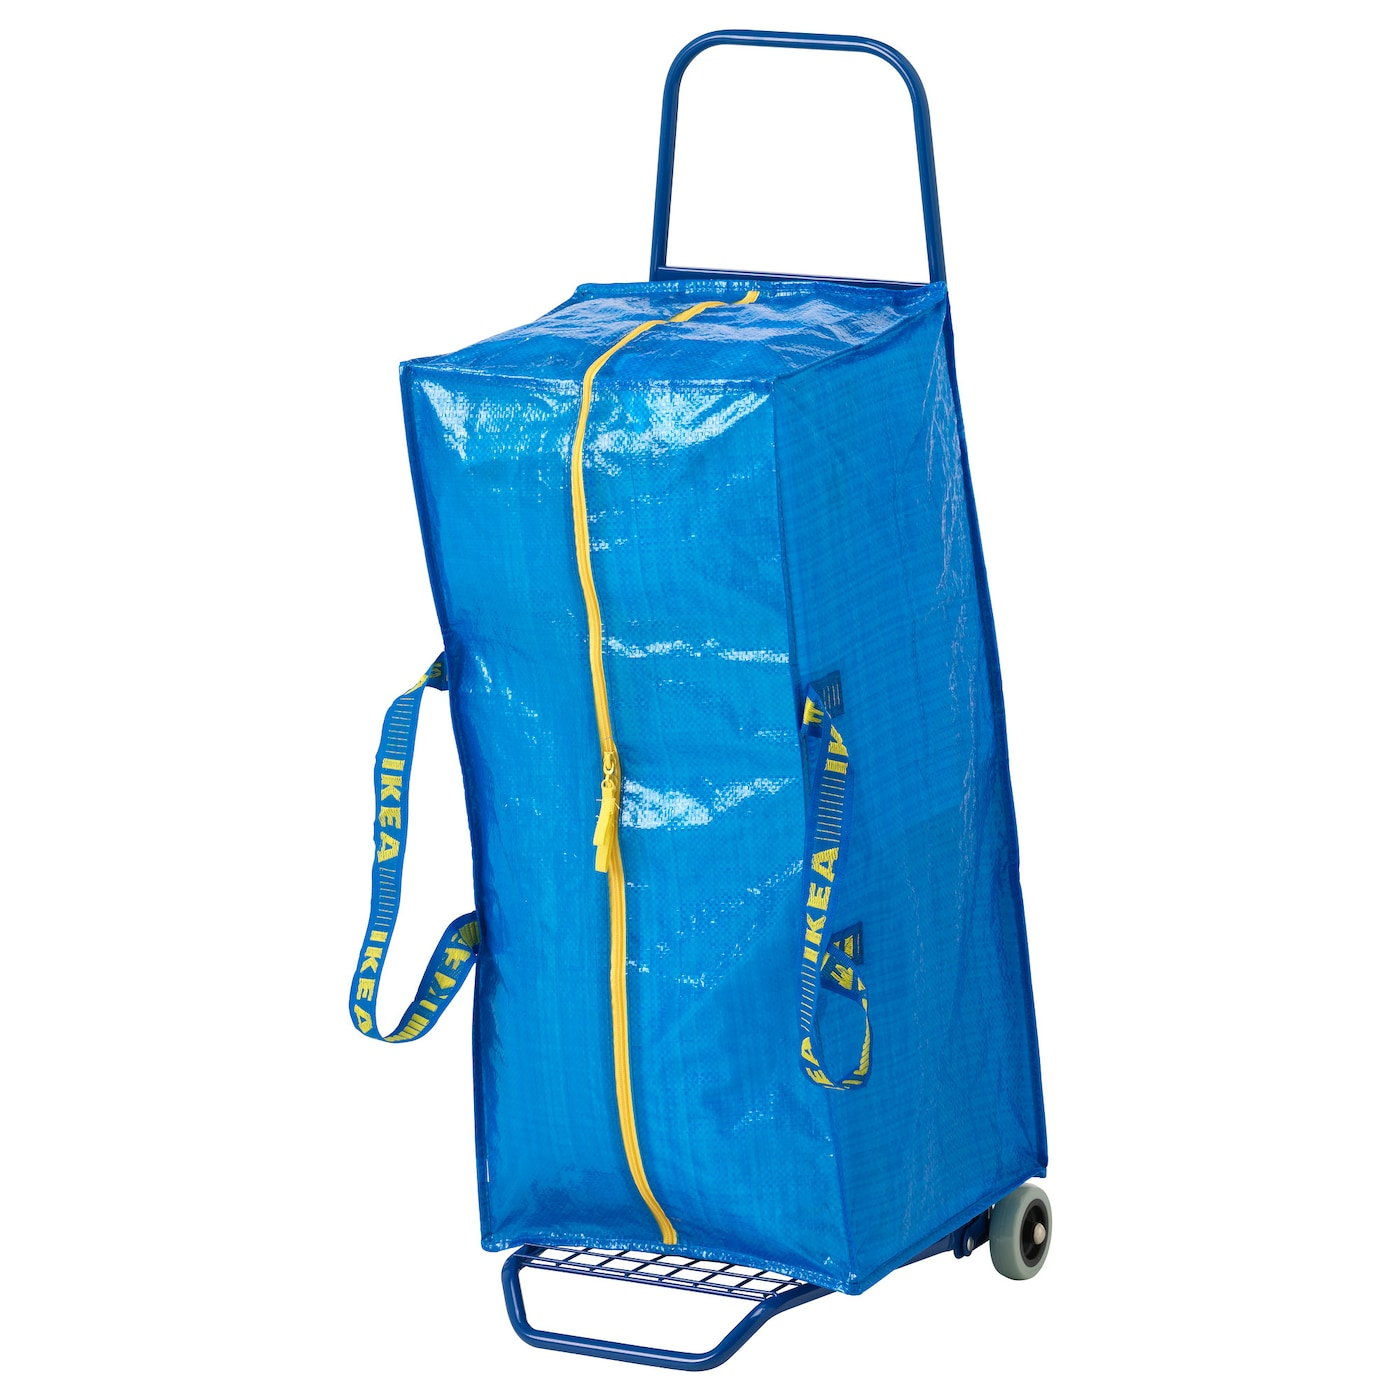 IKEA FRAKTA trolley with trunk Perfect for transporting your purchases, or heavy items in your home.